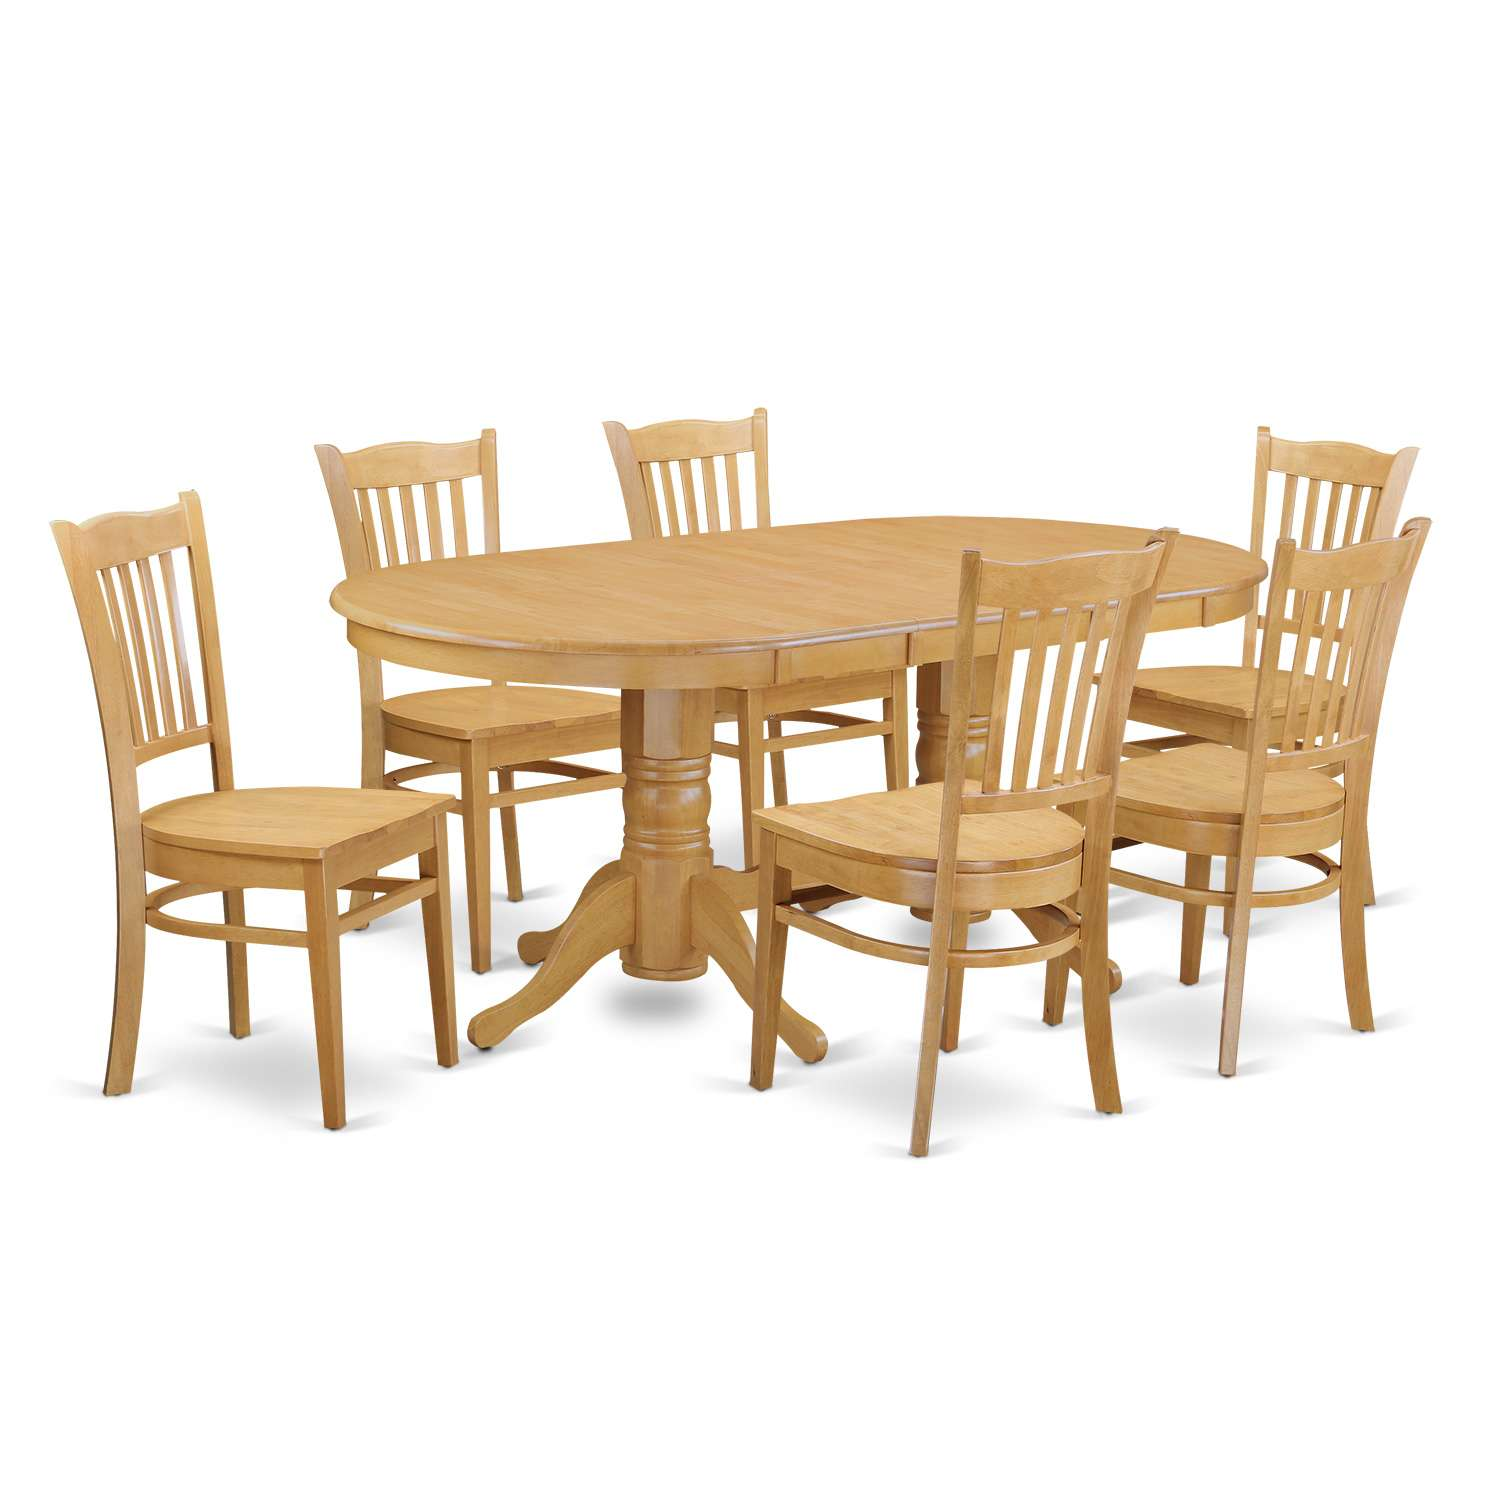 East west furniture vagr7 oak w vancouver 7 piece dining table set table with leaf and 6 dining chairs